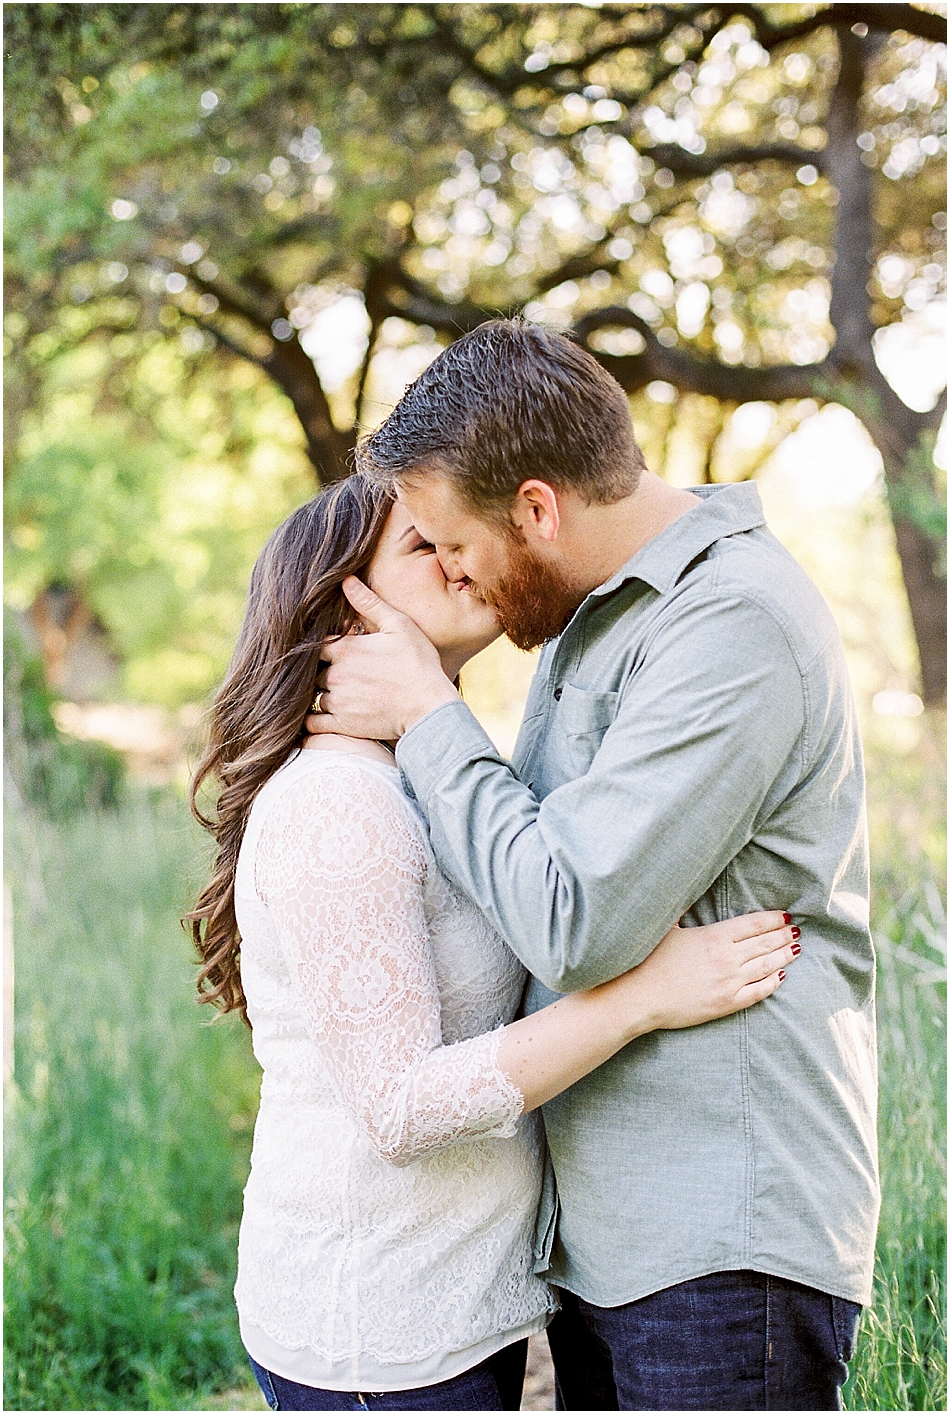 Brooke + Nick | Fine Art Creek Side Engagement | Film | Emilie Anne Photography-24.jpg